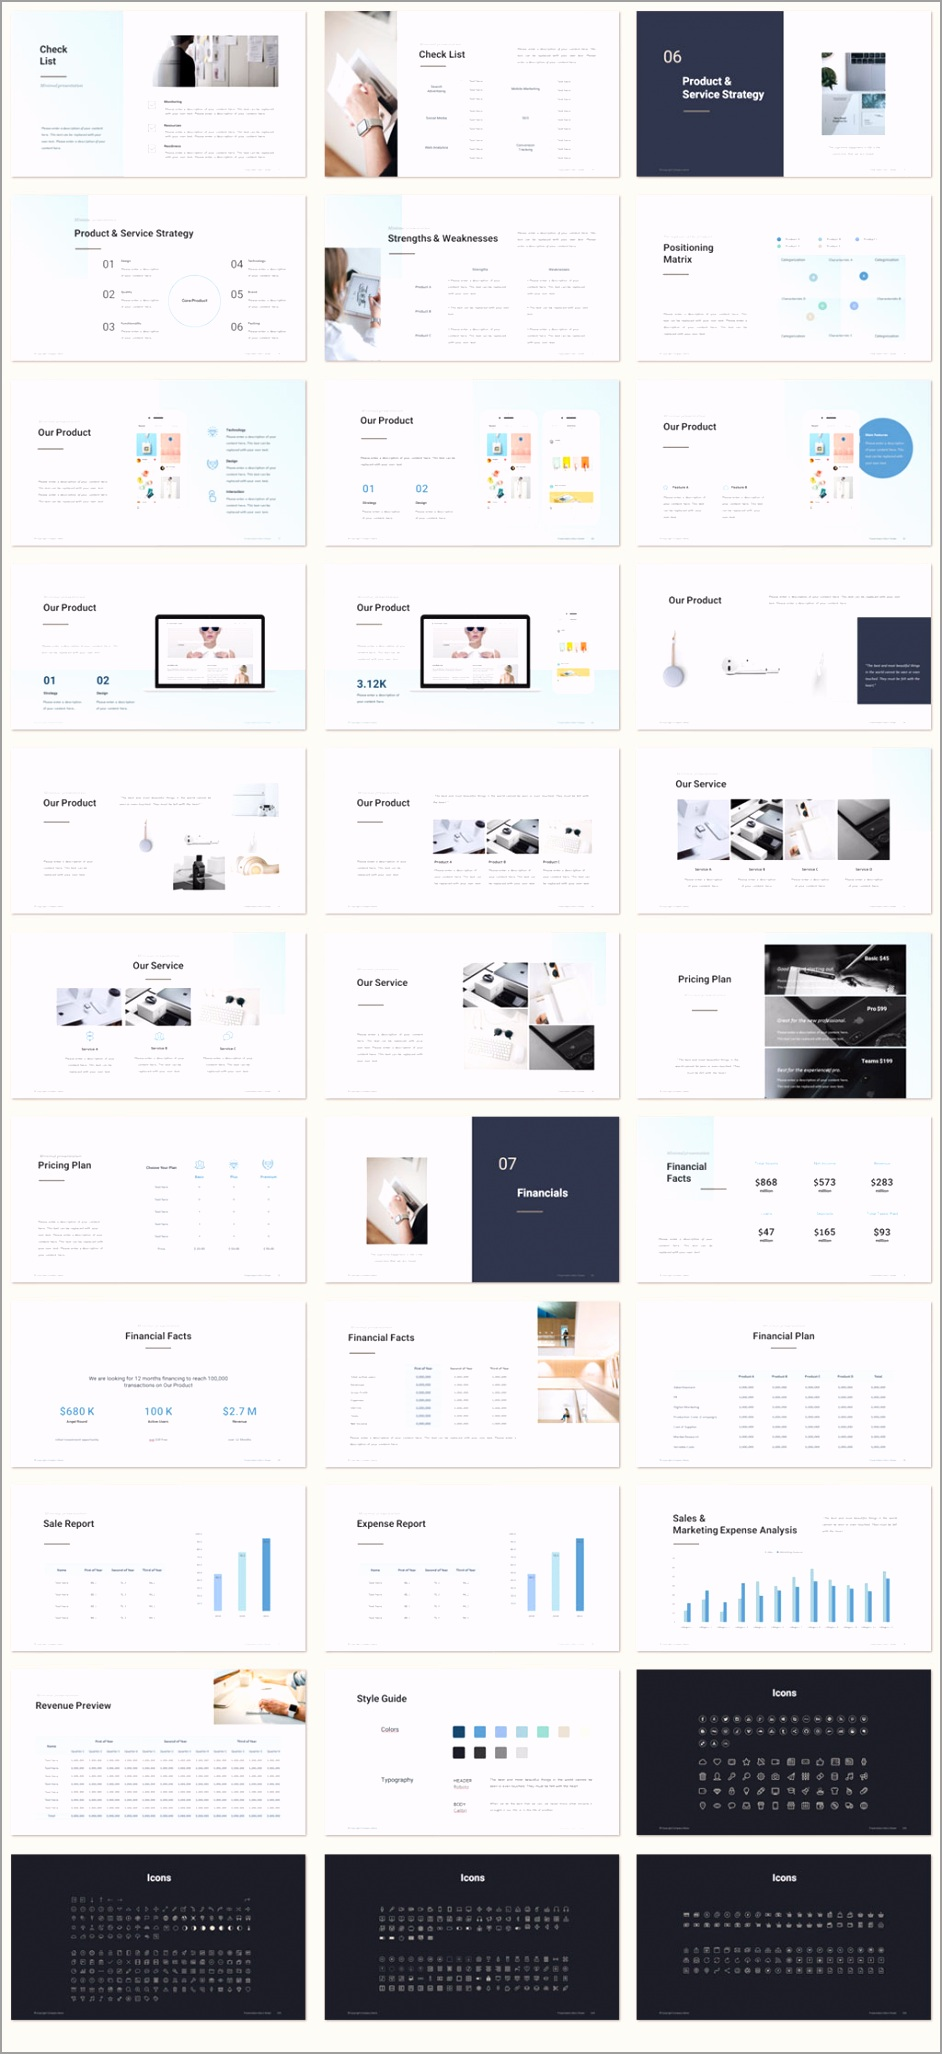 Marketing Strategy PowerPoint Template02 ytwtp